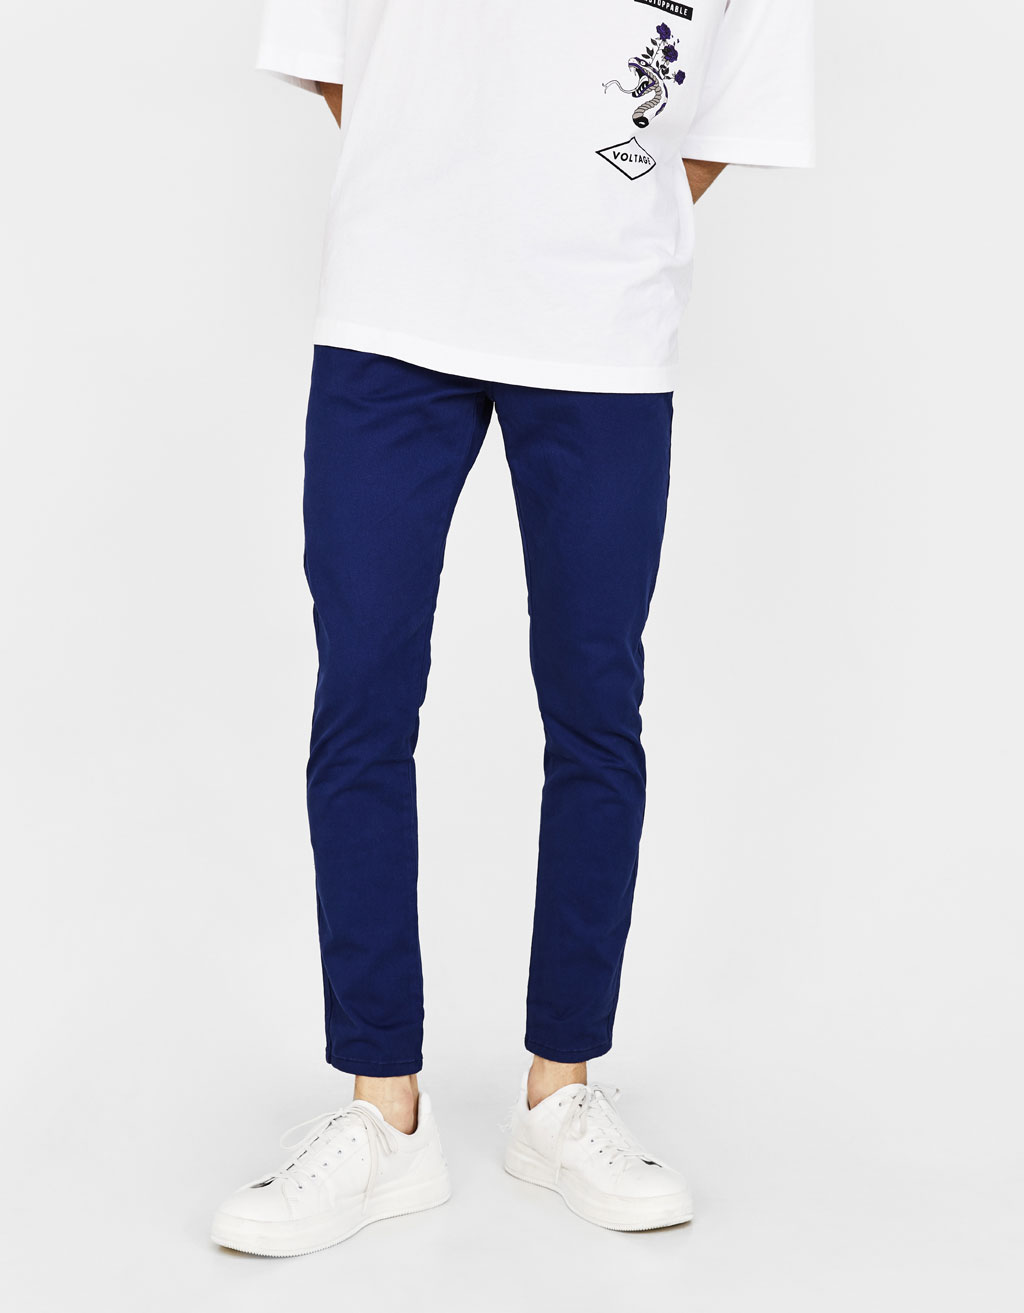 Skinny trousers with 5 pockets